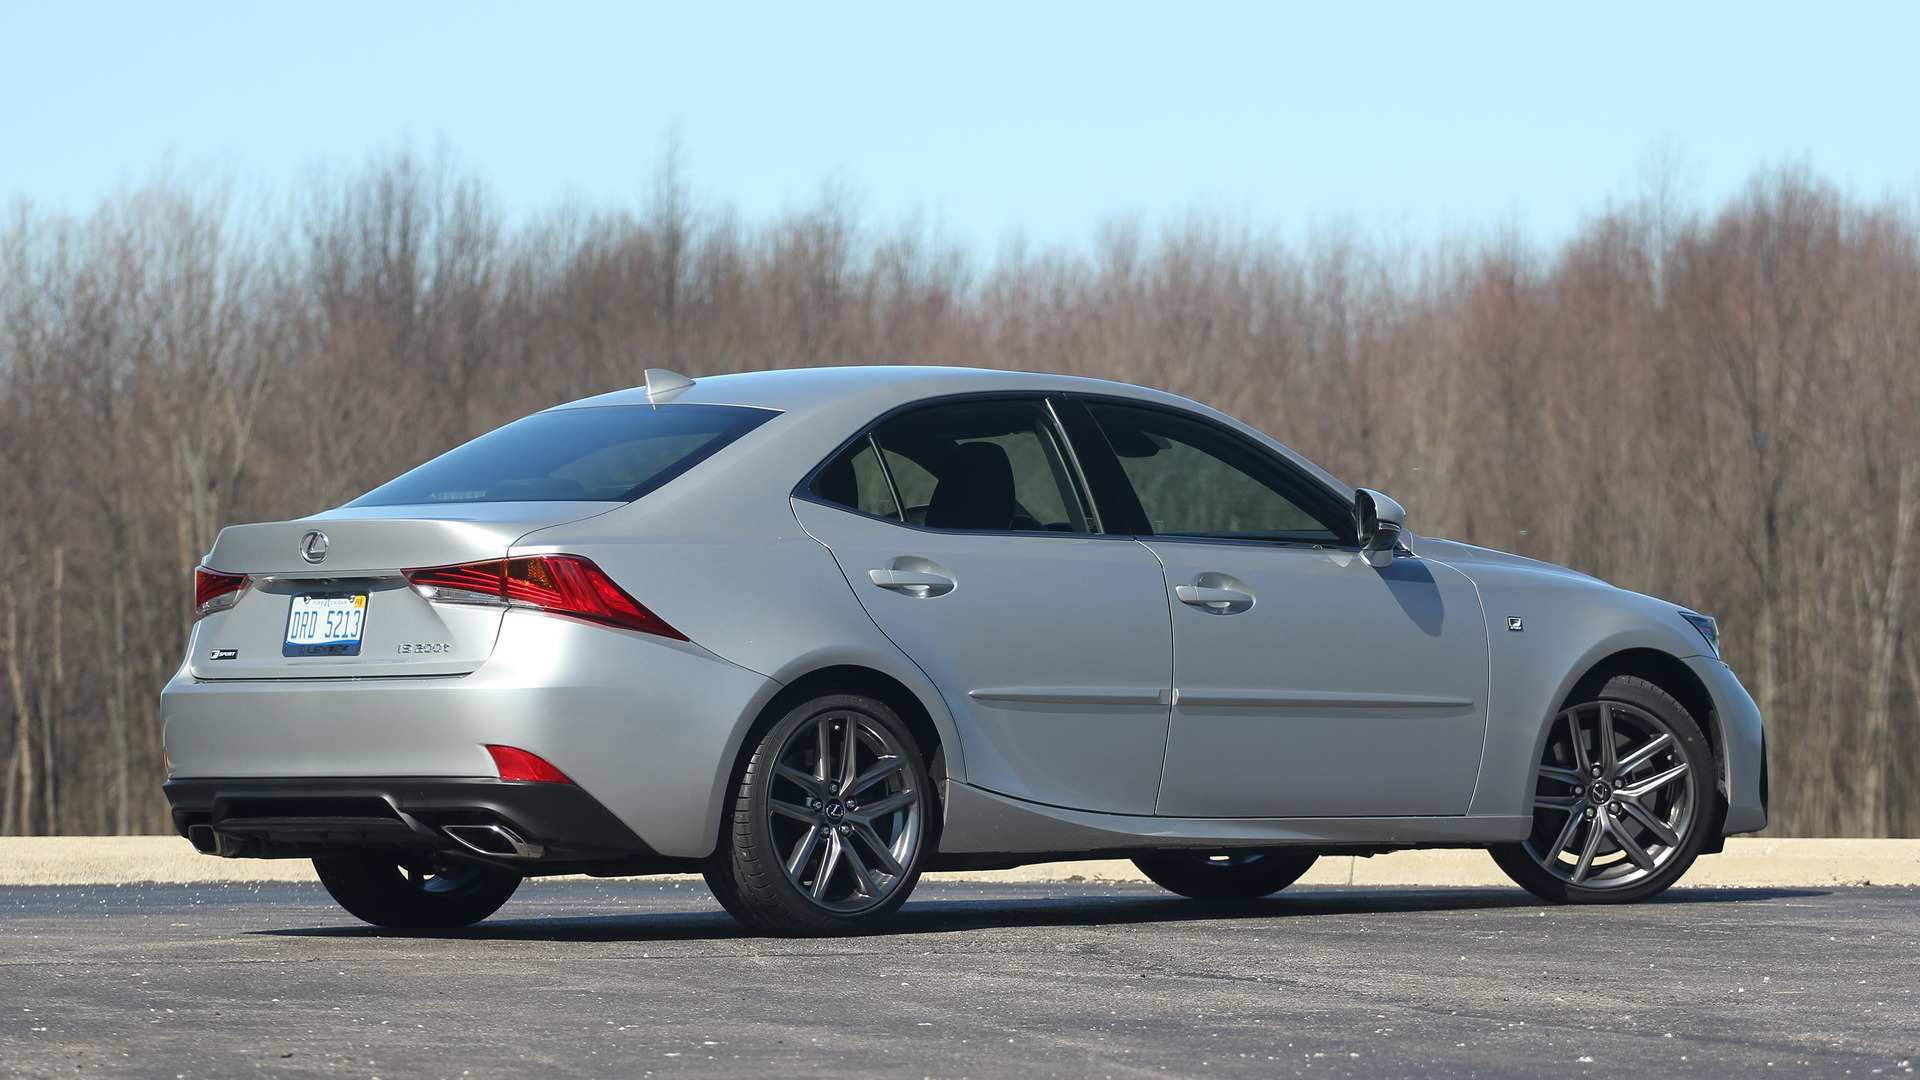 25 Great Lexus Isf 2020 Research New for Lexus Isf 2020